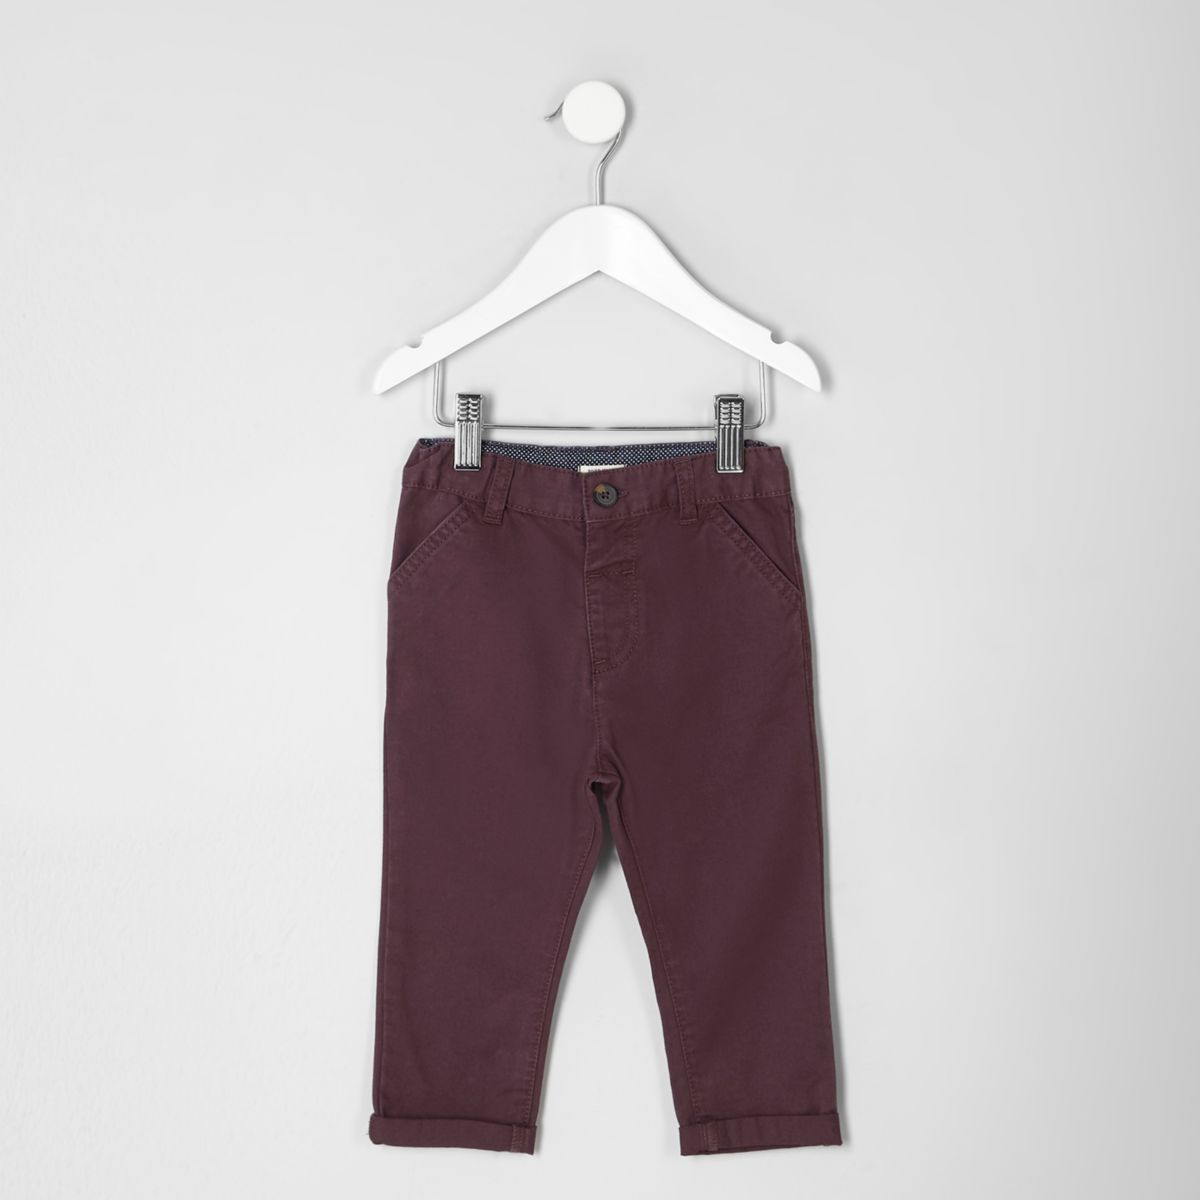 Mini boys burgundy chino pants